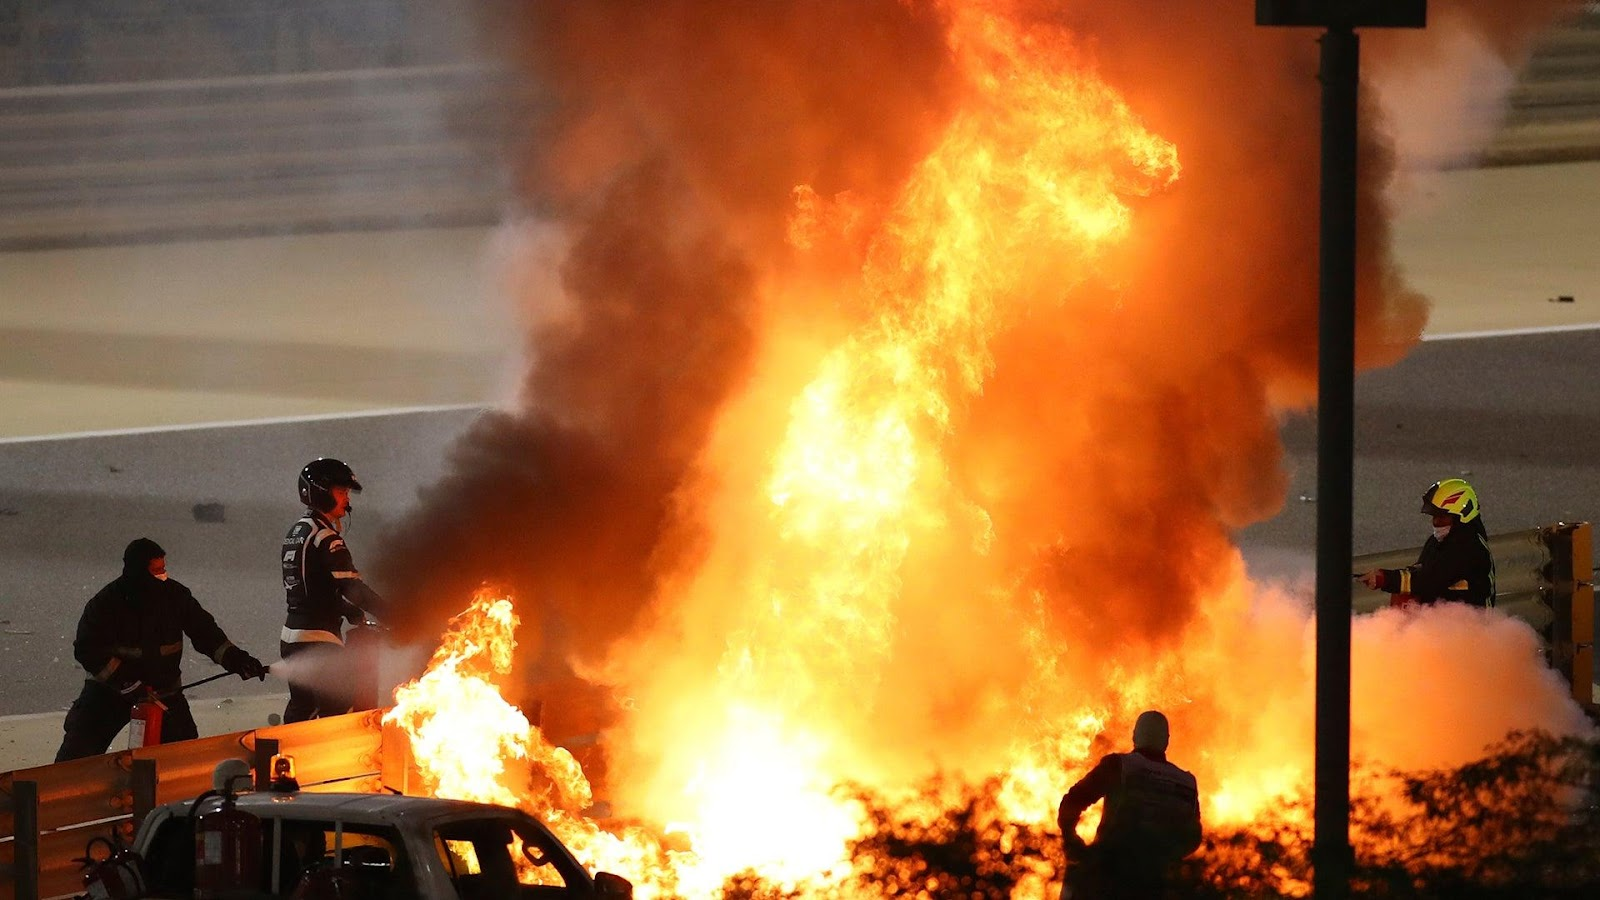 F1 Driver Romain Grosjean Survives After Car Explodes in ...